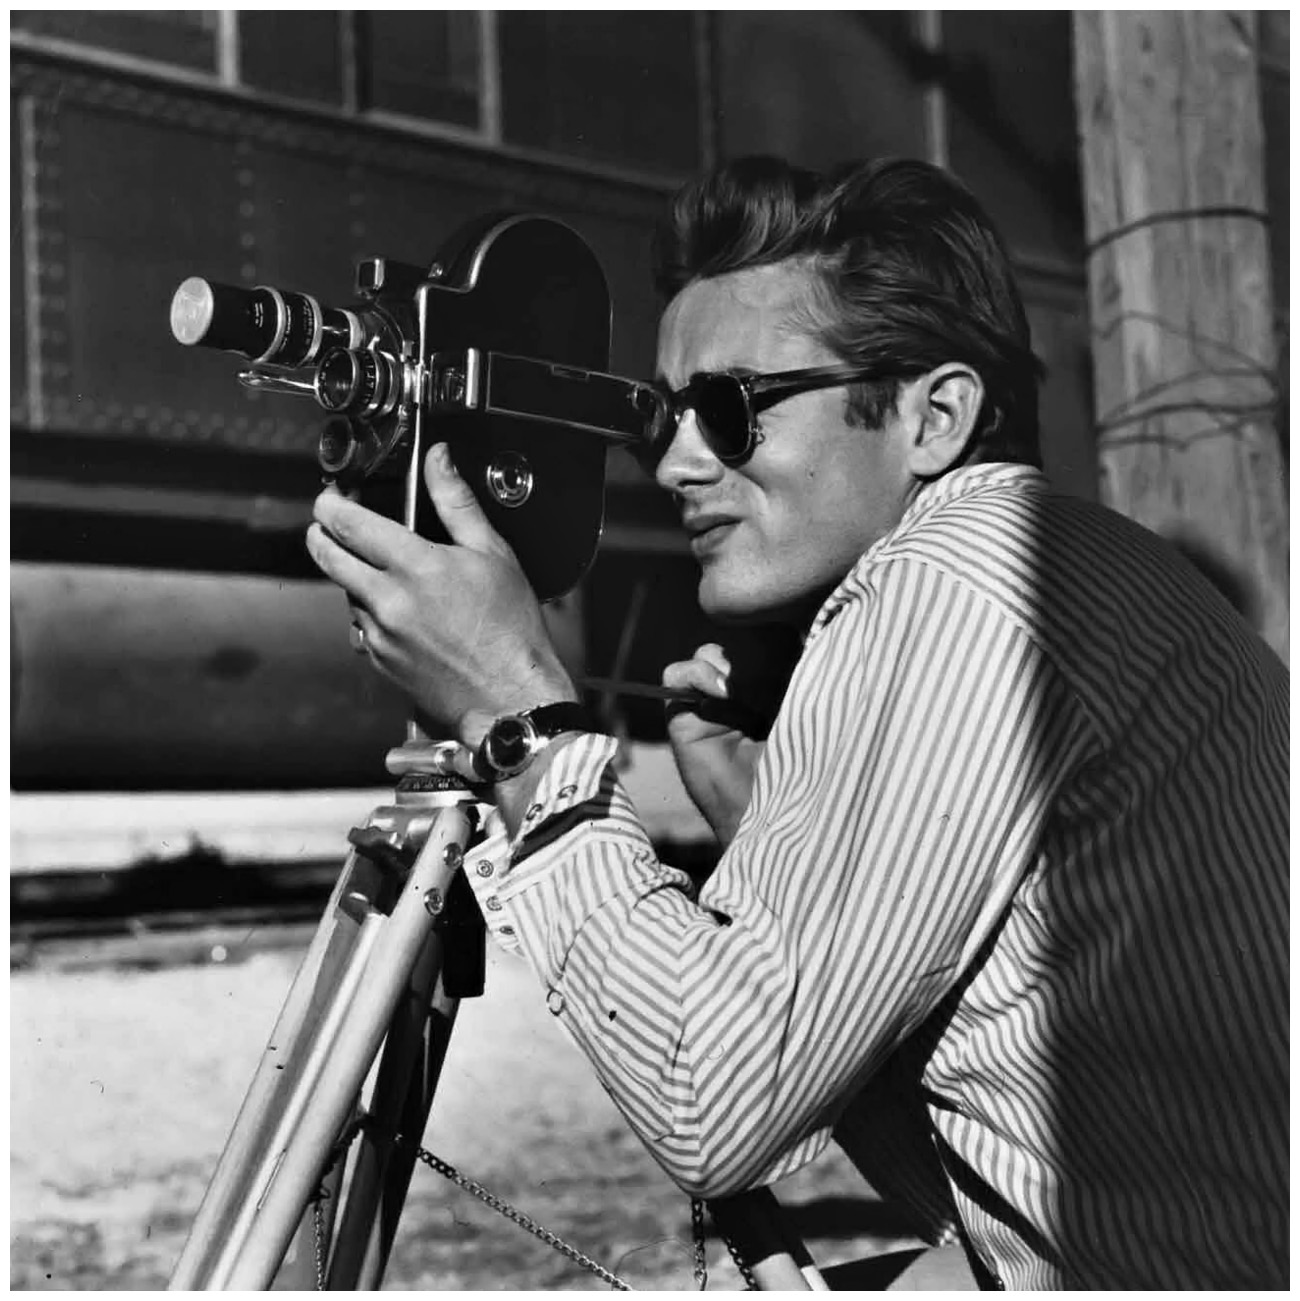 f5e9d1d9bf567a James Dean on the set of Giant